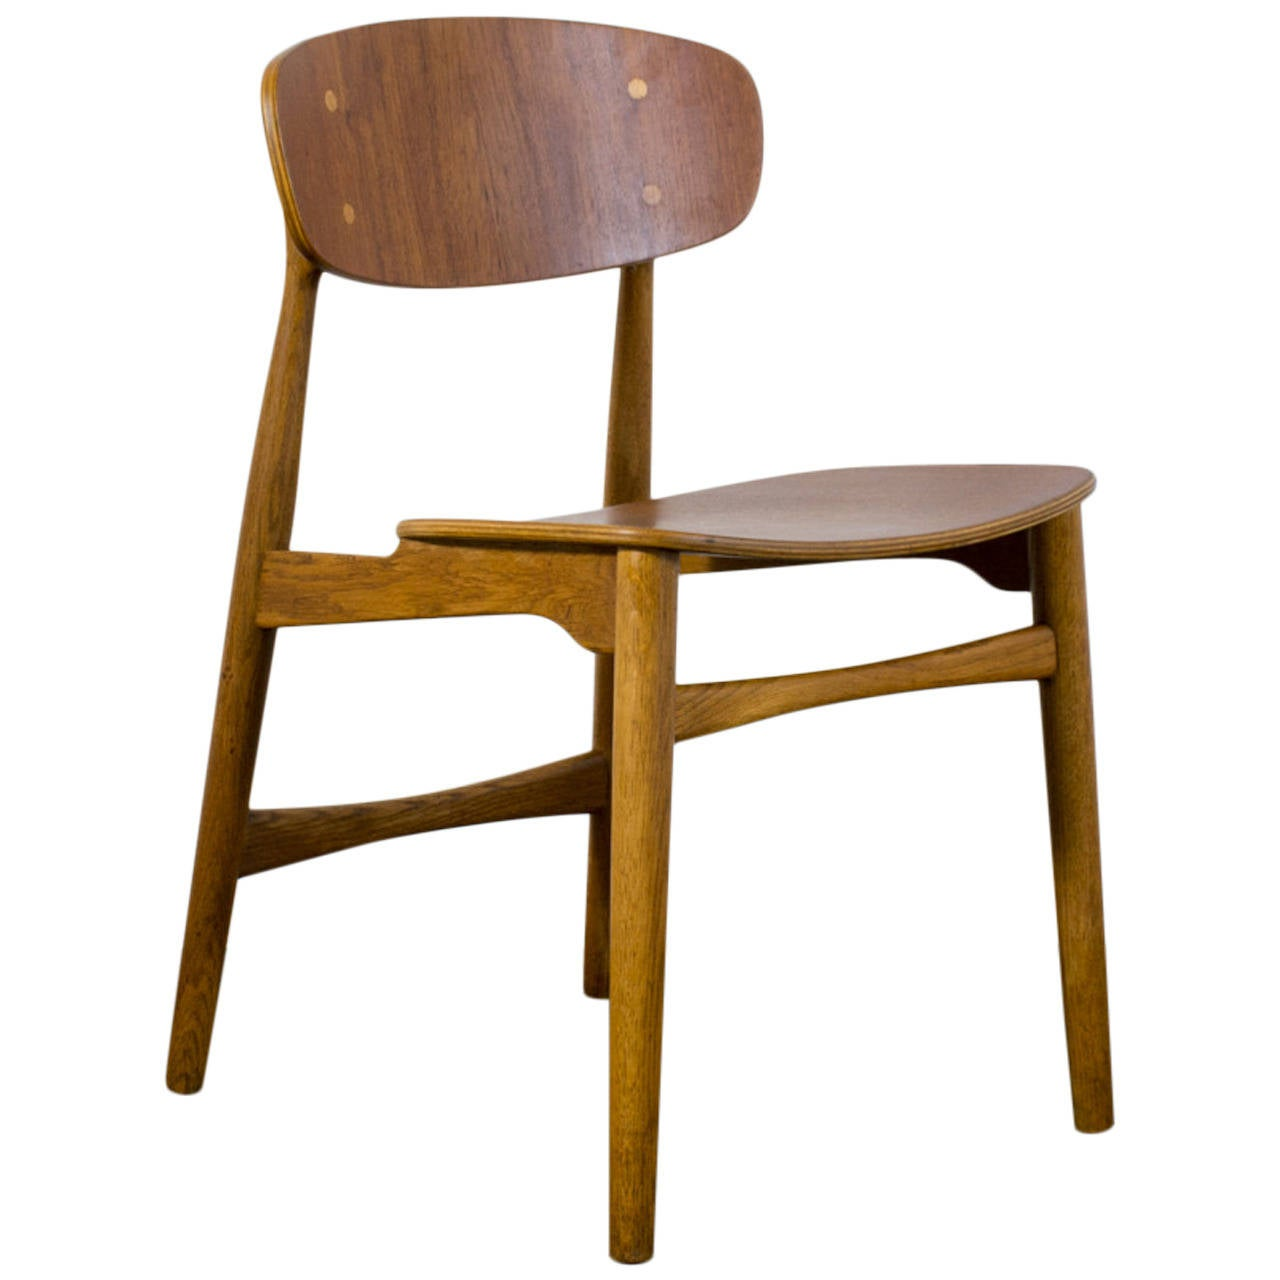 this danish modern teak side chair is no longer available